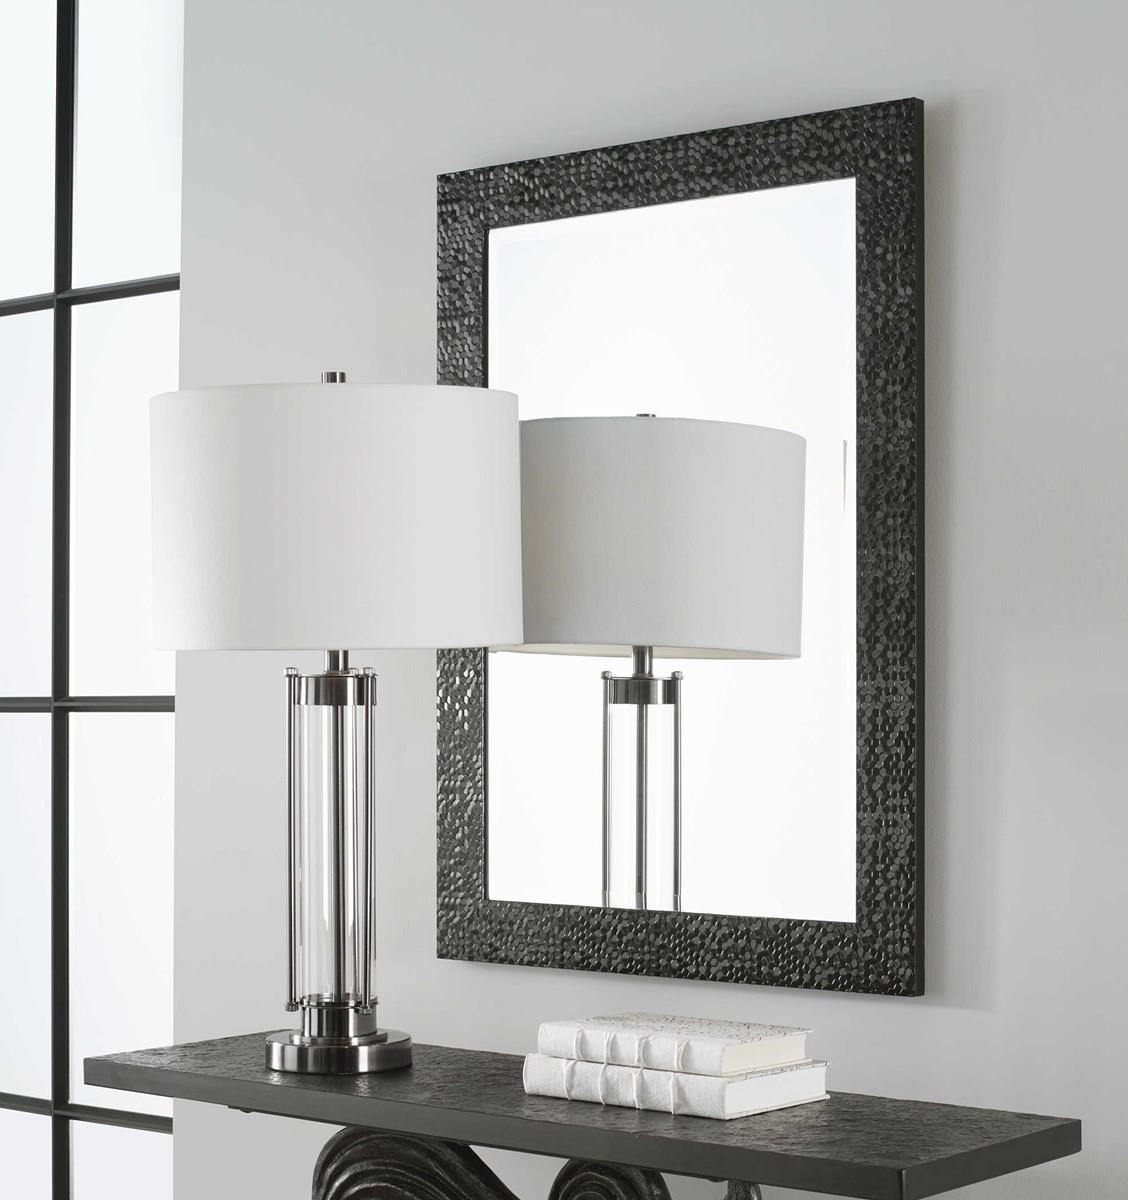 Mirrors ARYA WALL MIRROR by Unique at Walker's Furniture